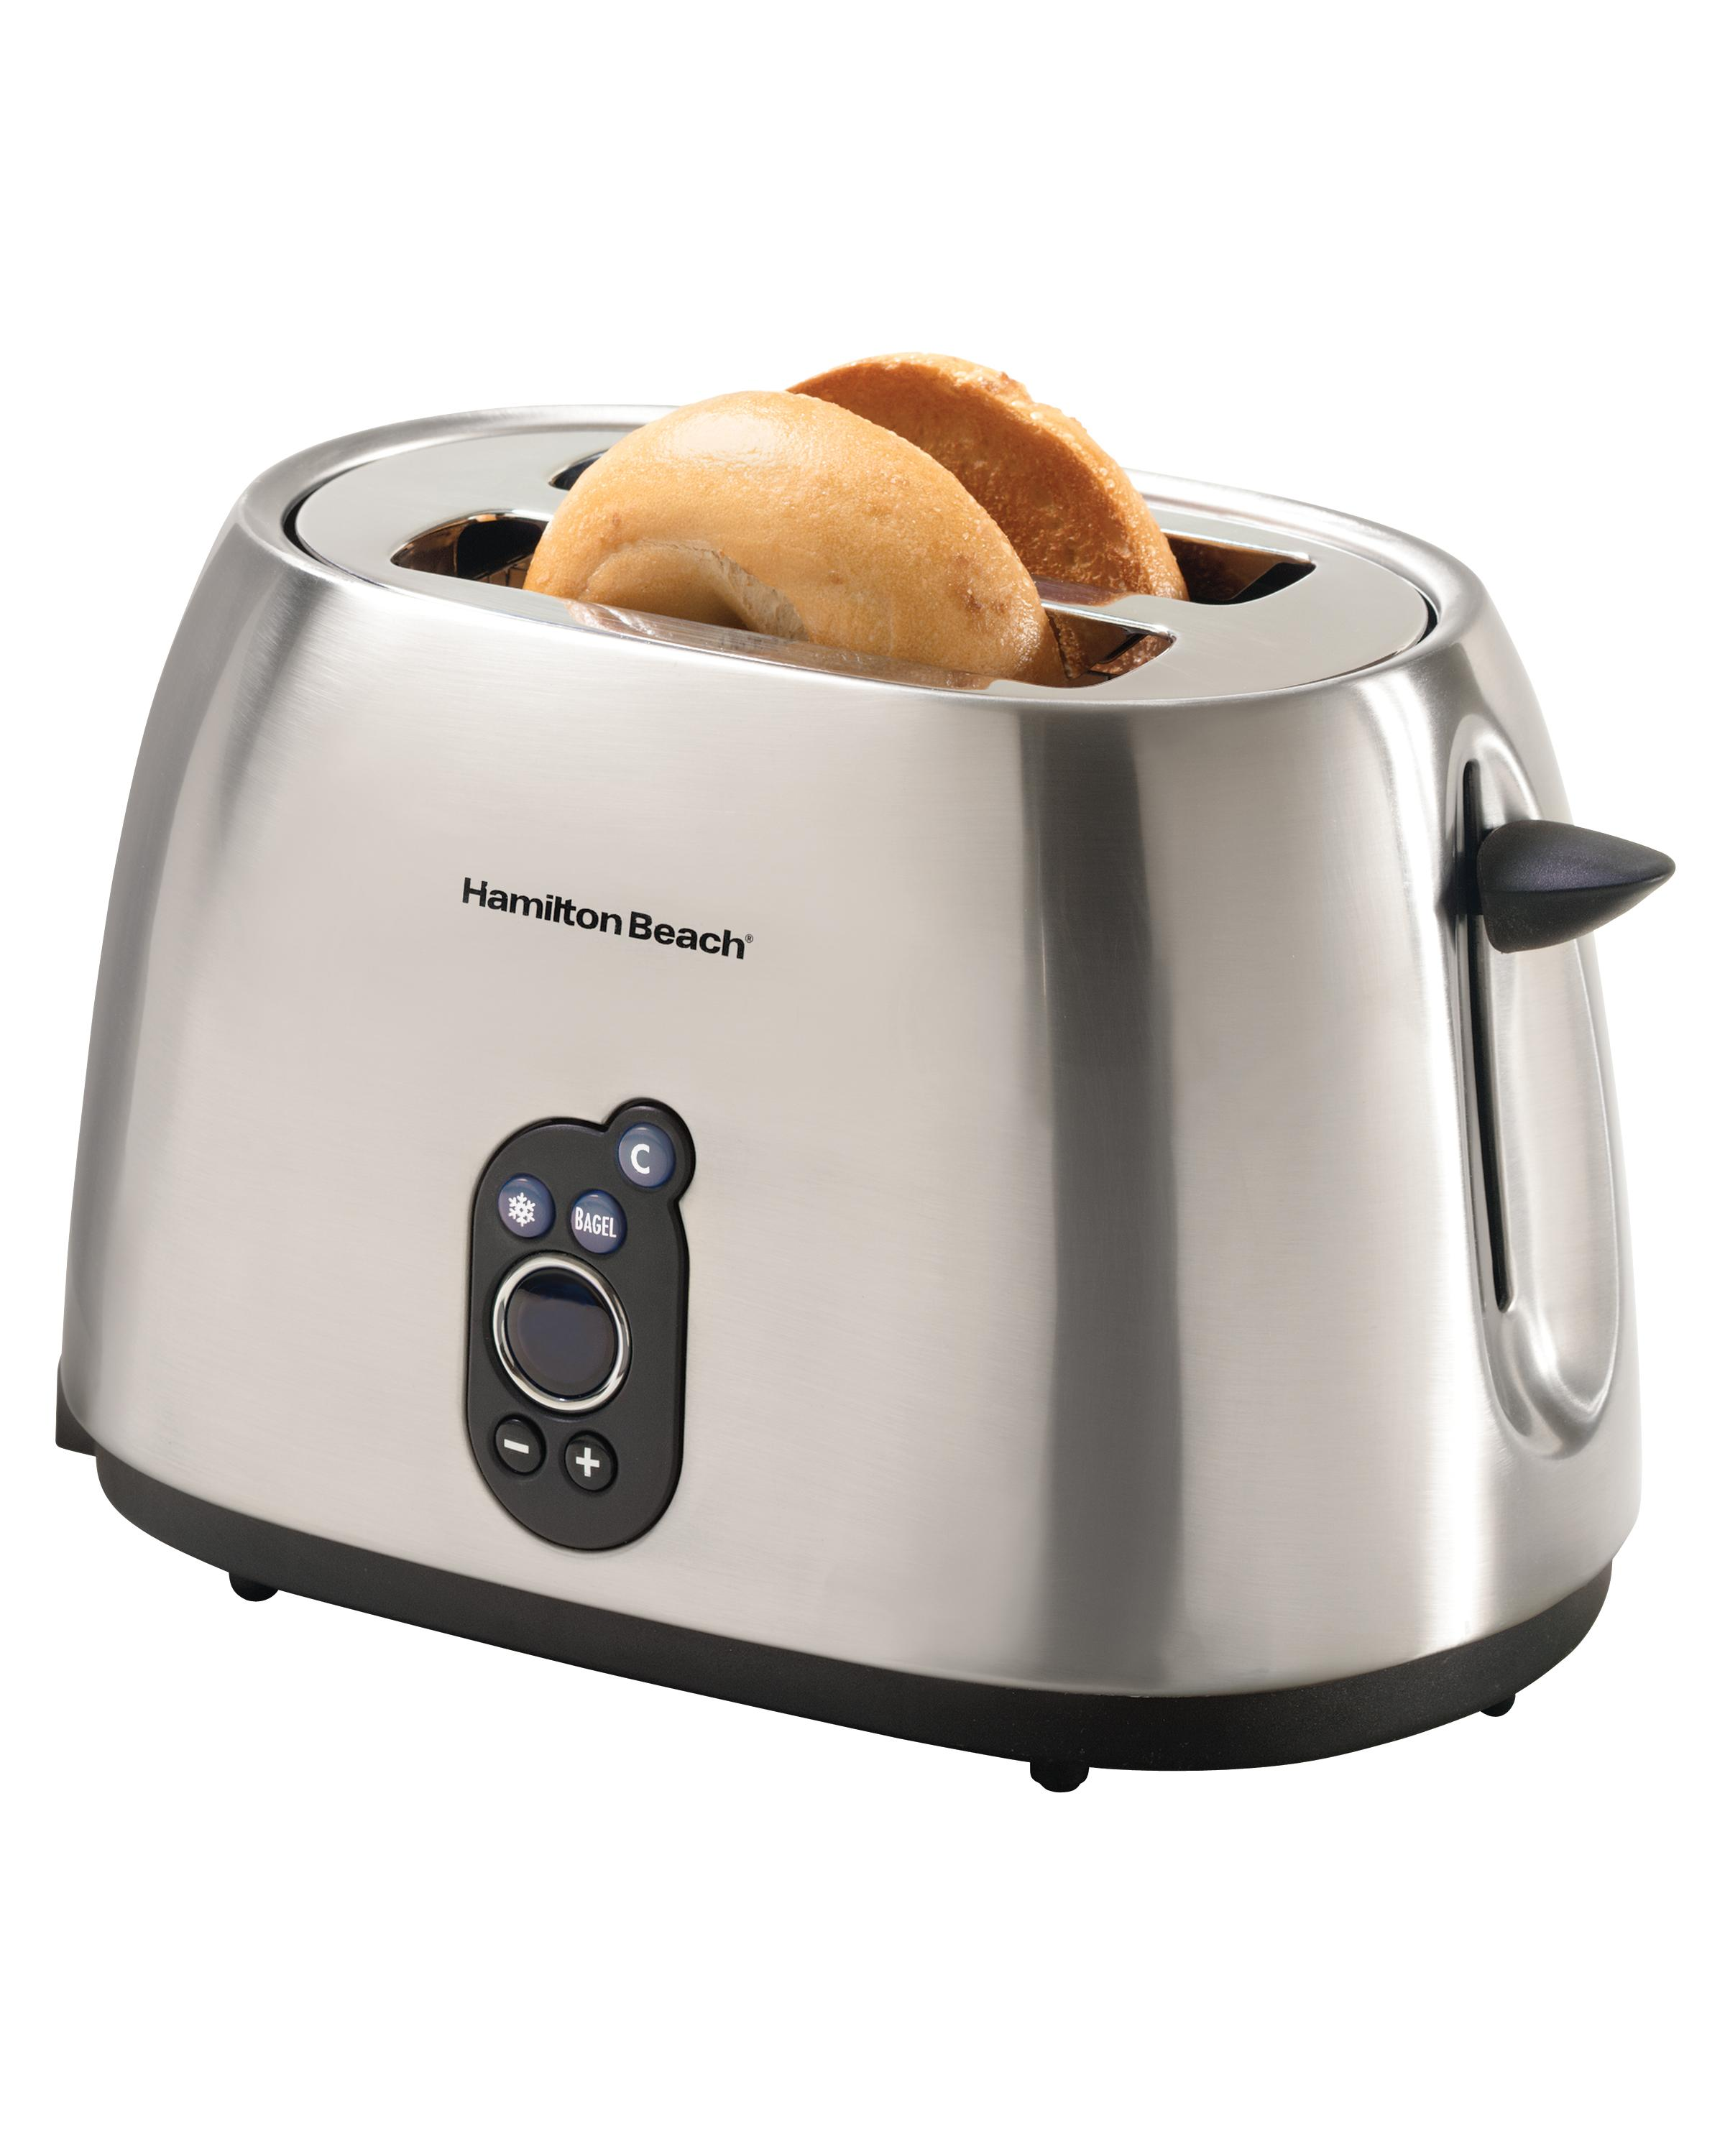 oven june smart whom best home product system countertop photos for toaster but a